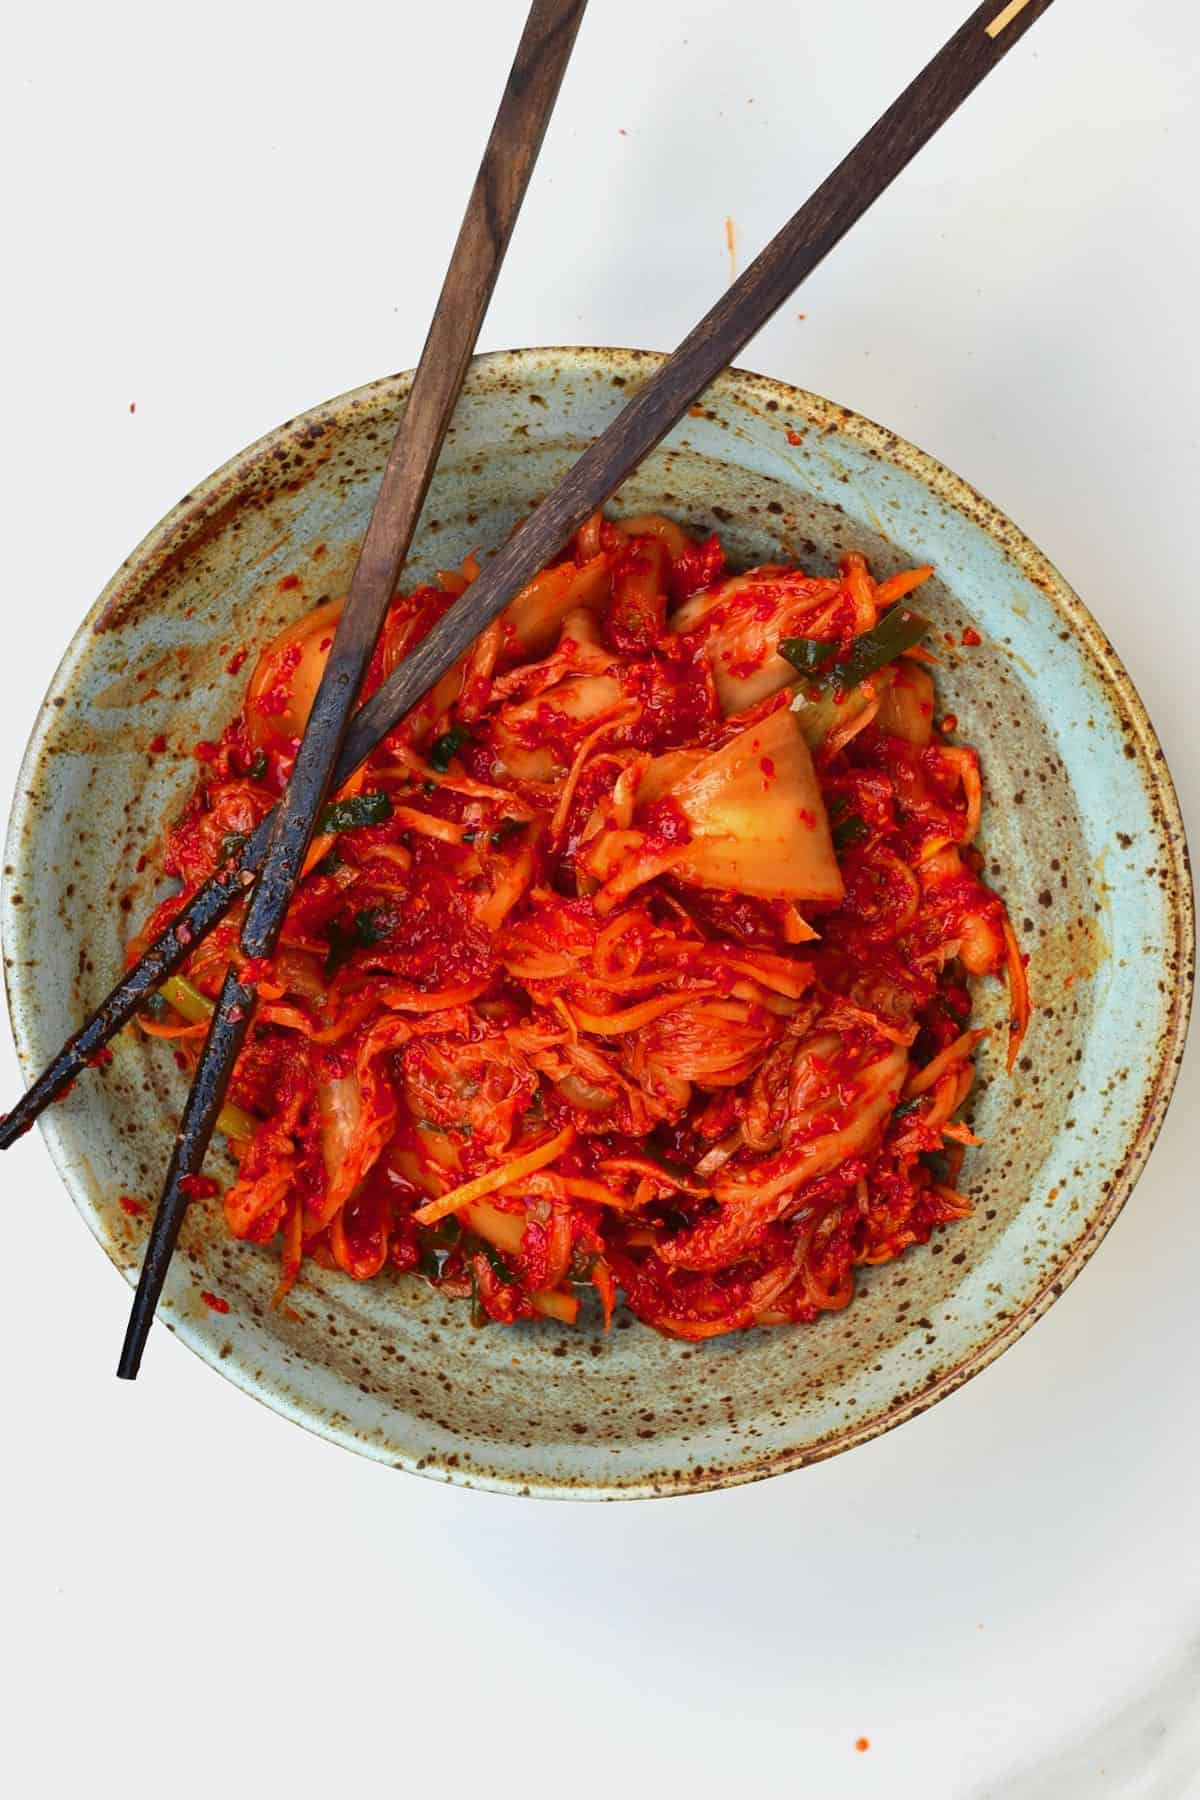 Kimchi served in a plate